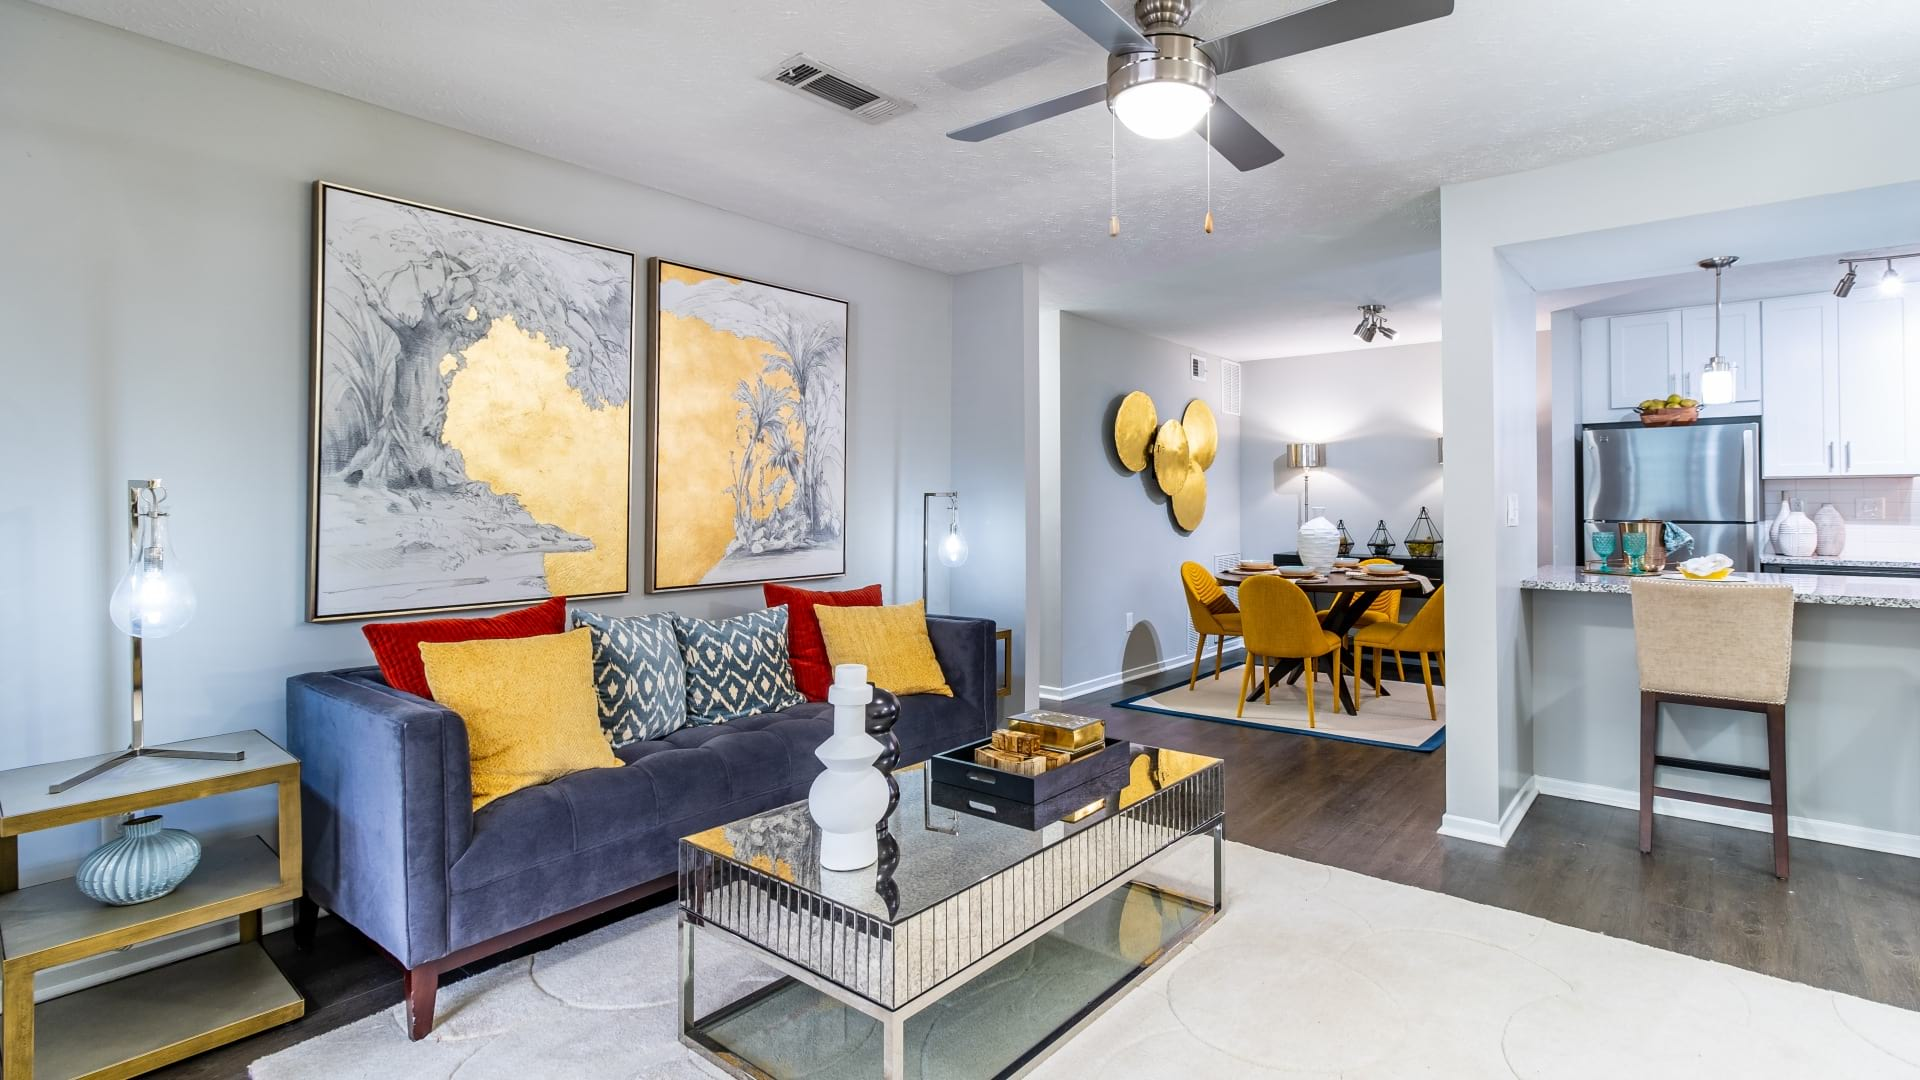 Spacious living rooms at apartments in Decatur, GA